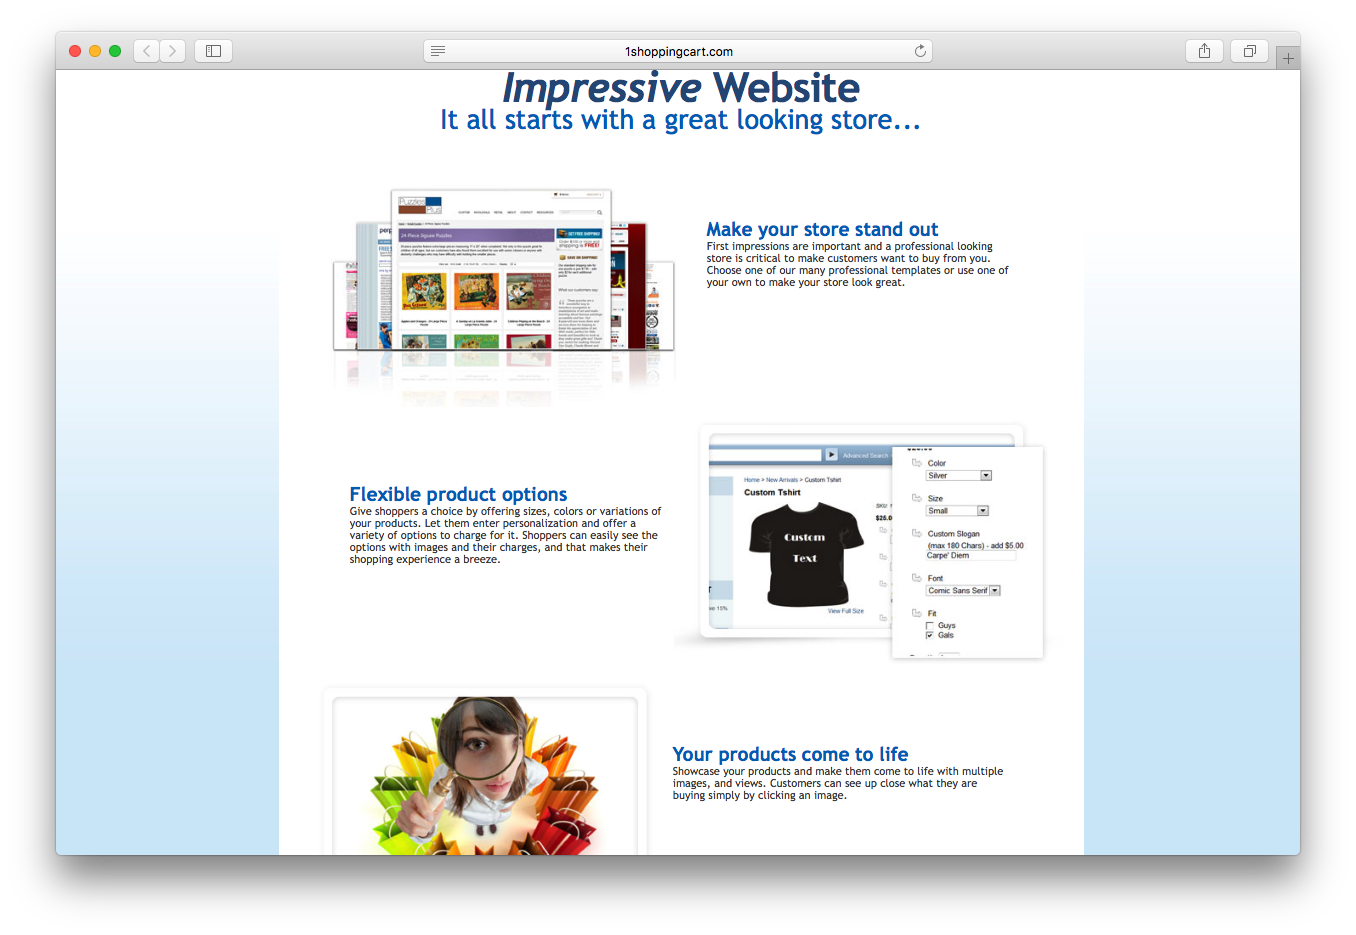 1ShoppingCart website store professional templates flexible product options